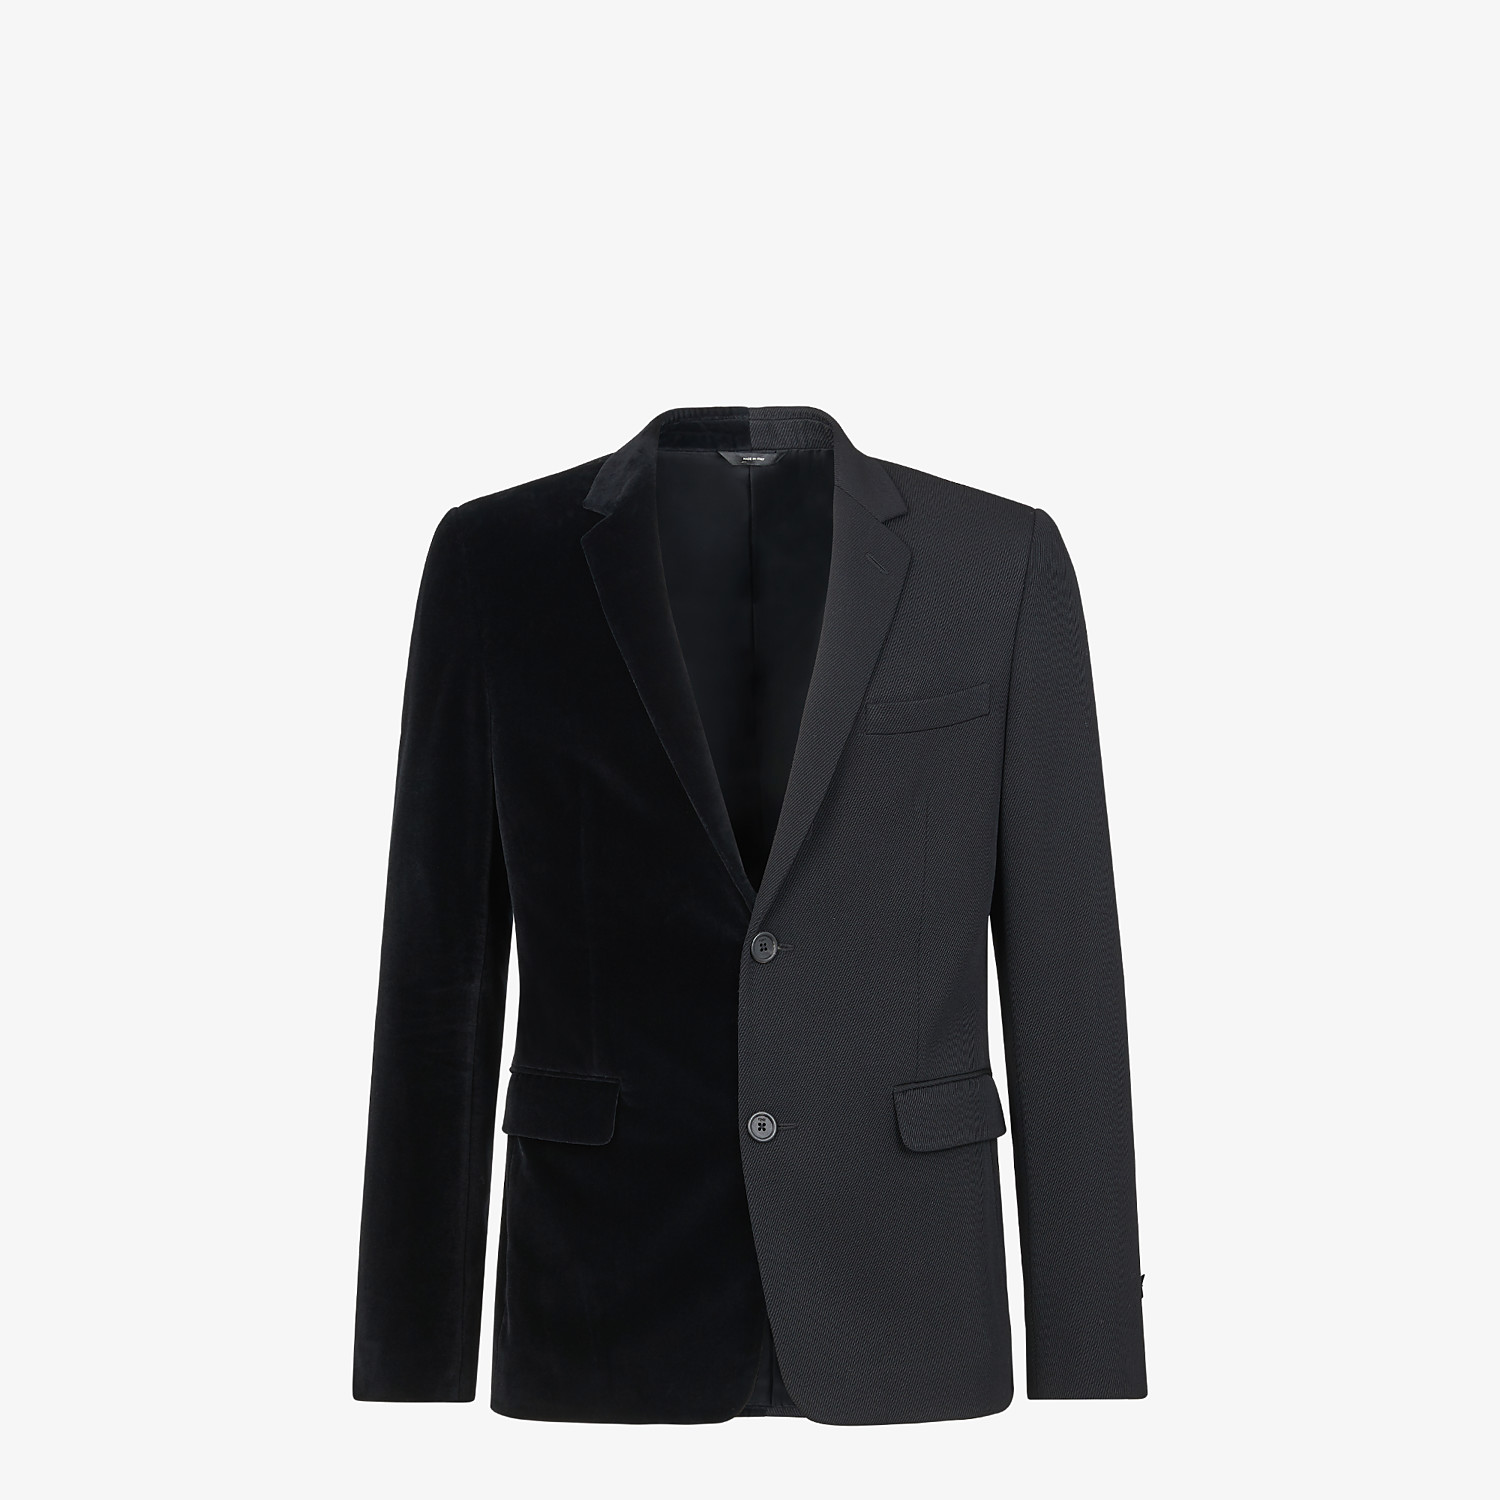 FENDI JACKET - Black velvet and wool blazer - view 1 detail